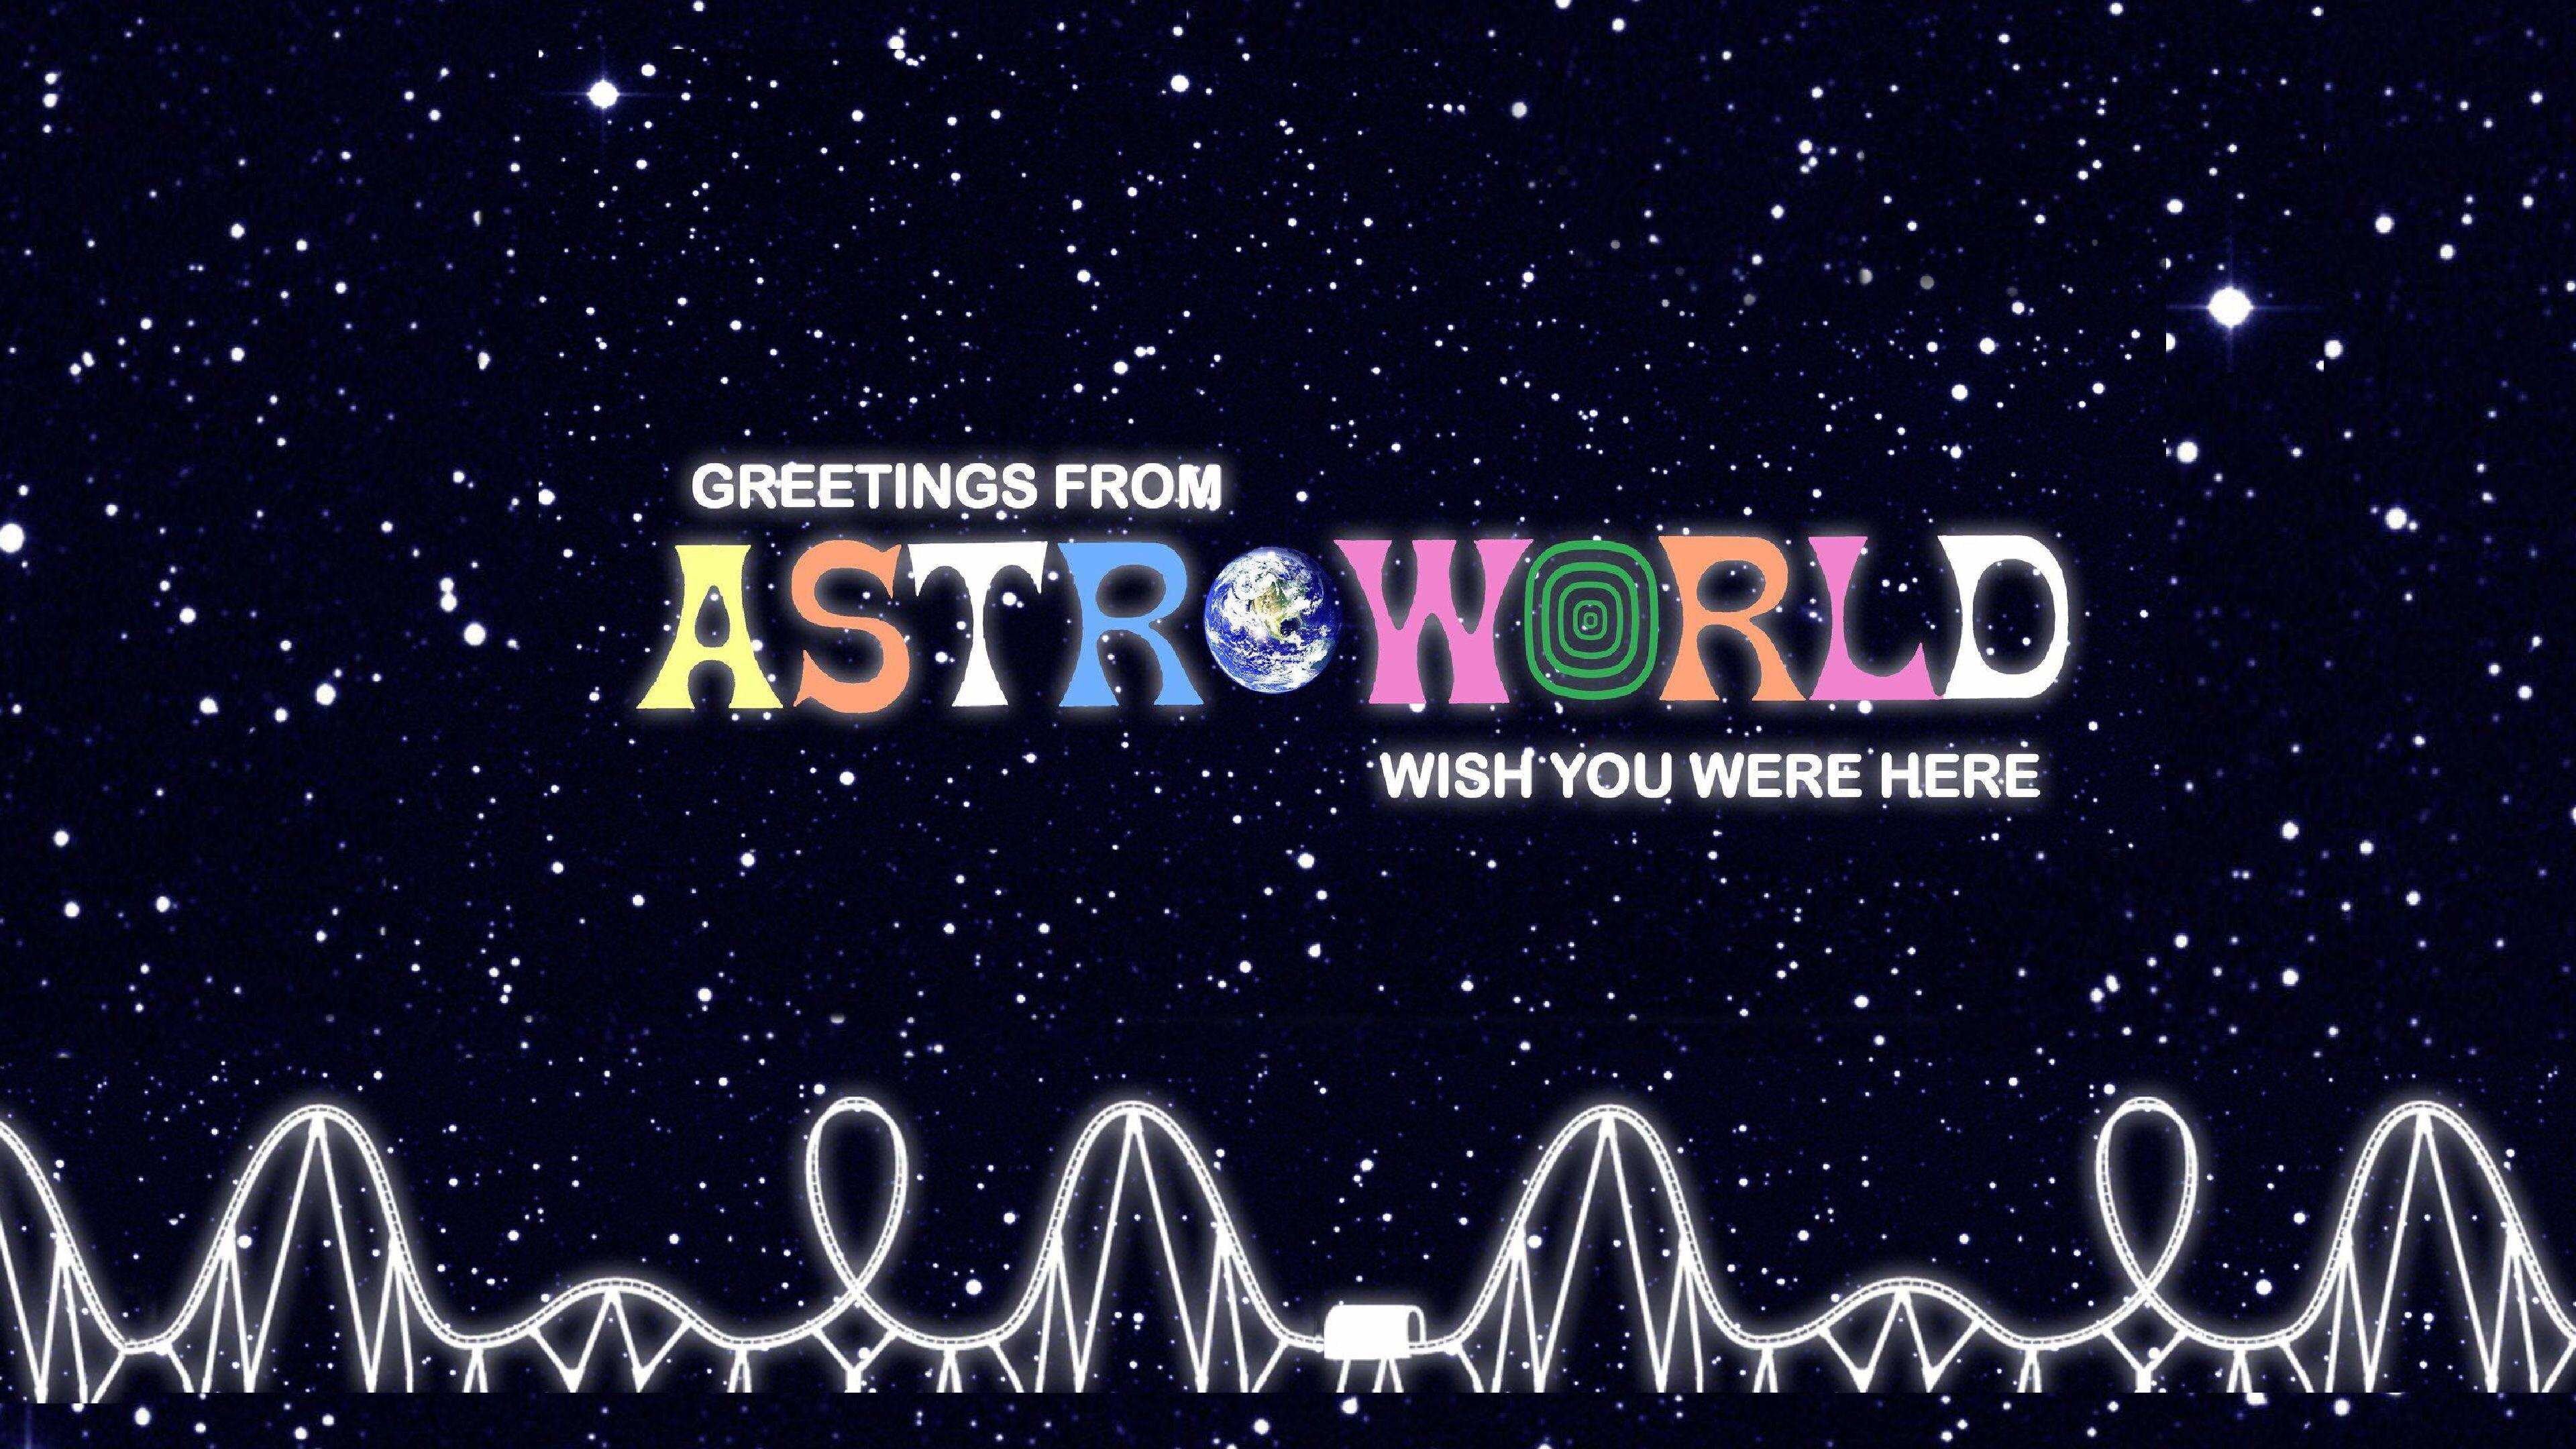 Travis Scott Astroworld Wallpapers Posted By Samantha Thompson